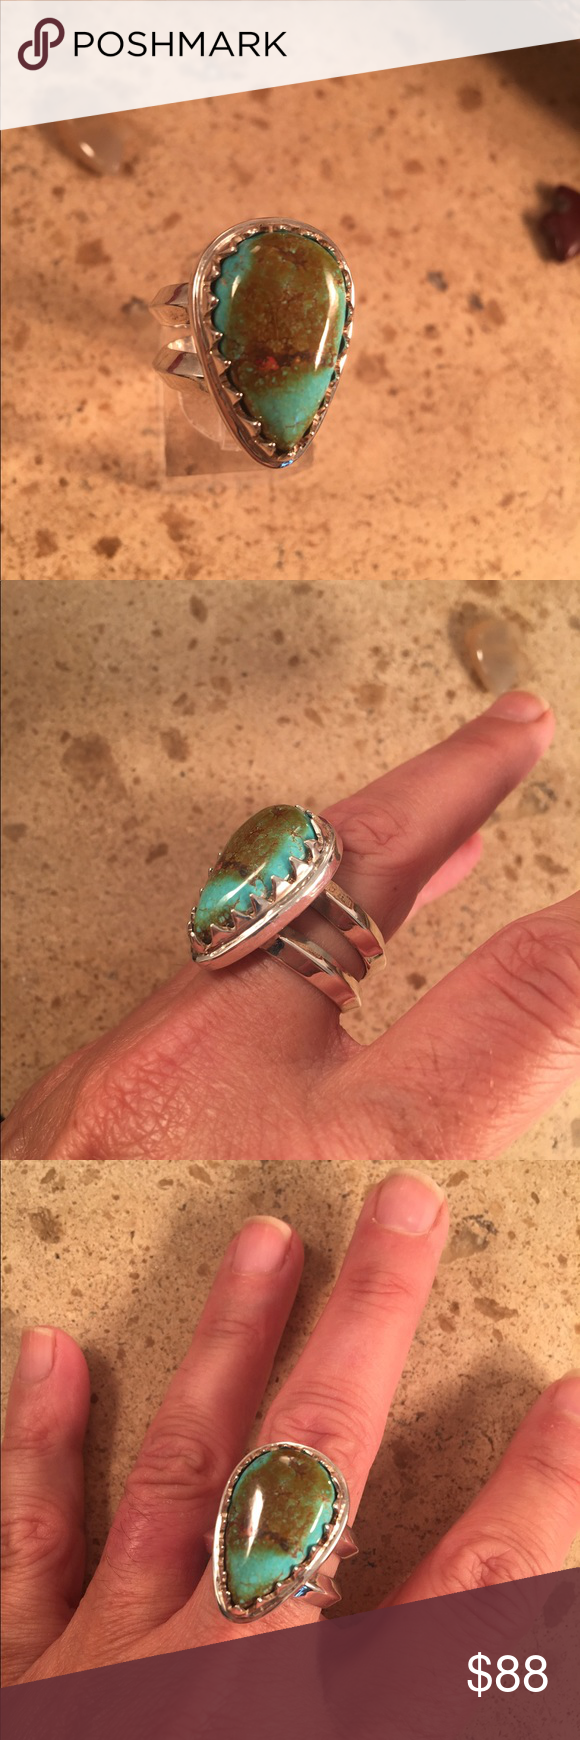 Navajo Turquoise & Sterling ring size 7.5 signed This wonderful piece is made of Sterling Silver and  Carico Lake Turquoise and is a size 7.5. The length is right at 1 inch long and 3/4 of an inch wide. (At the widest pint) This piece is signed by the artist Ceejaye Livingston  and stamped Sterling.   Please contact me with any questions and thank you for looking. Jewelry Rings